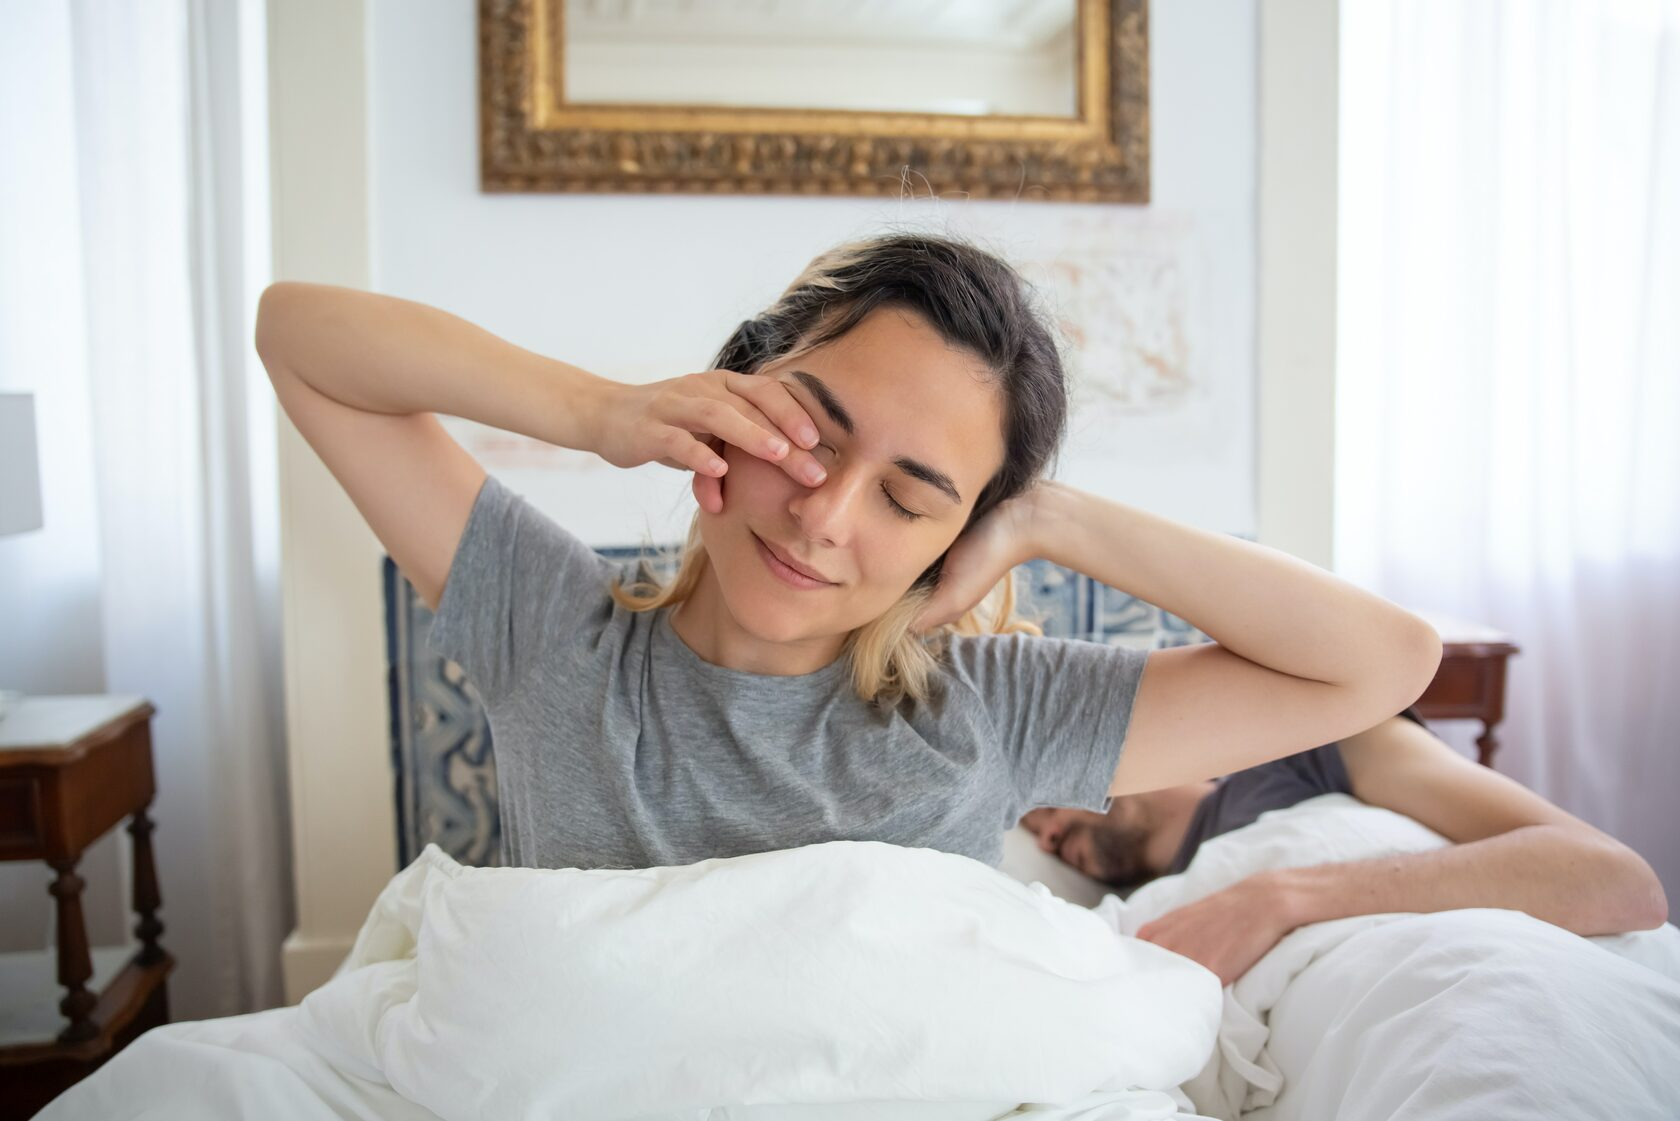 How to wake up with perfect hair?